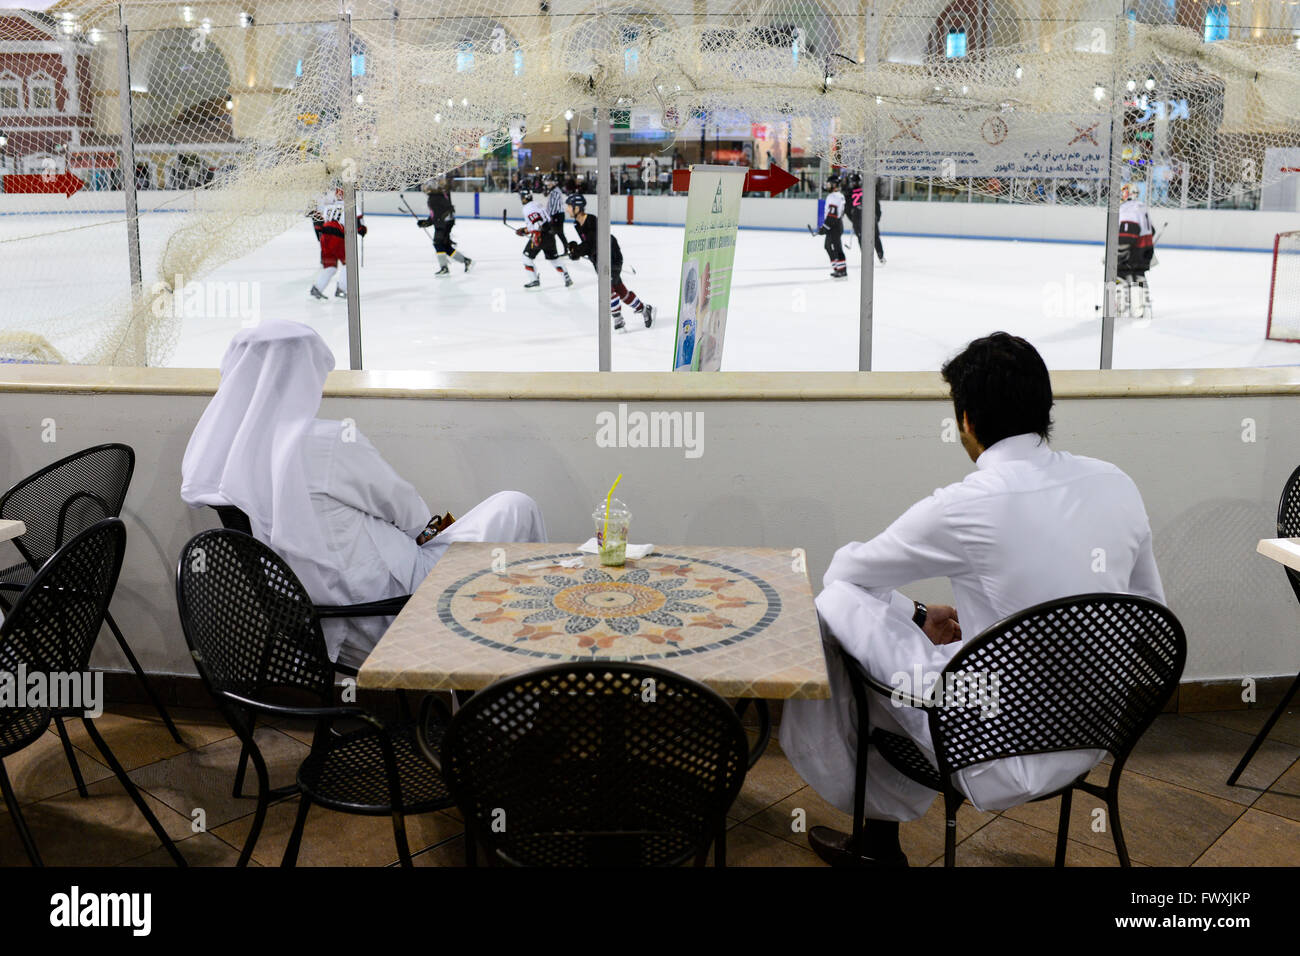 QATAR, Doha, Aspire Zone, Villaggio Mall shopping mall with ice skating ground, sheikhs observing ice hockey game - Stock Image